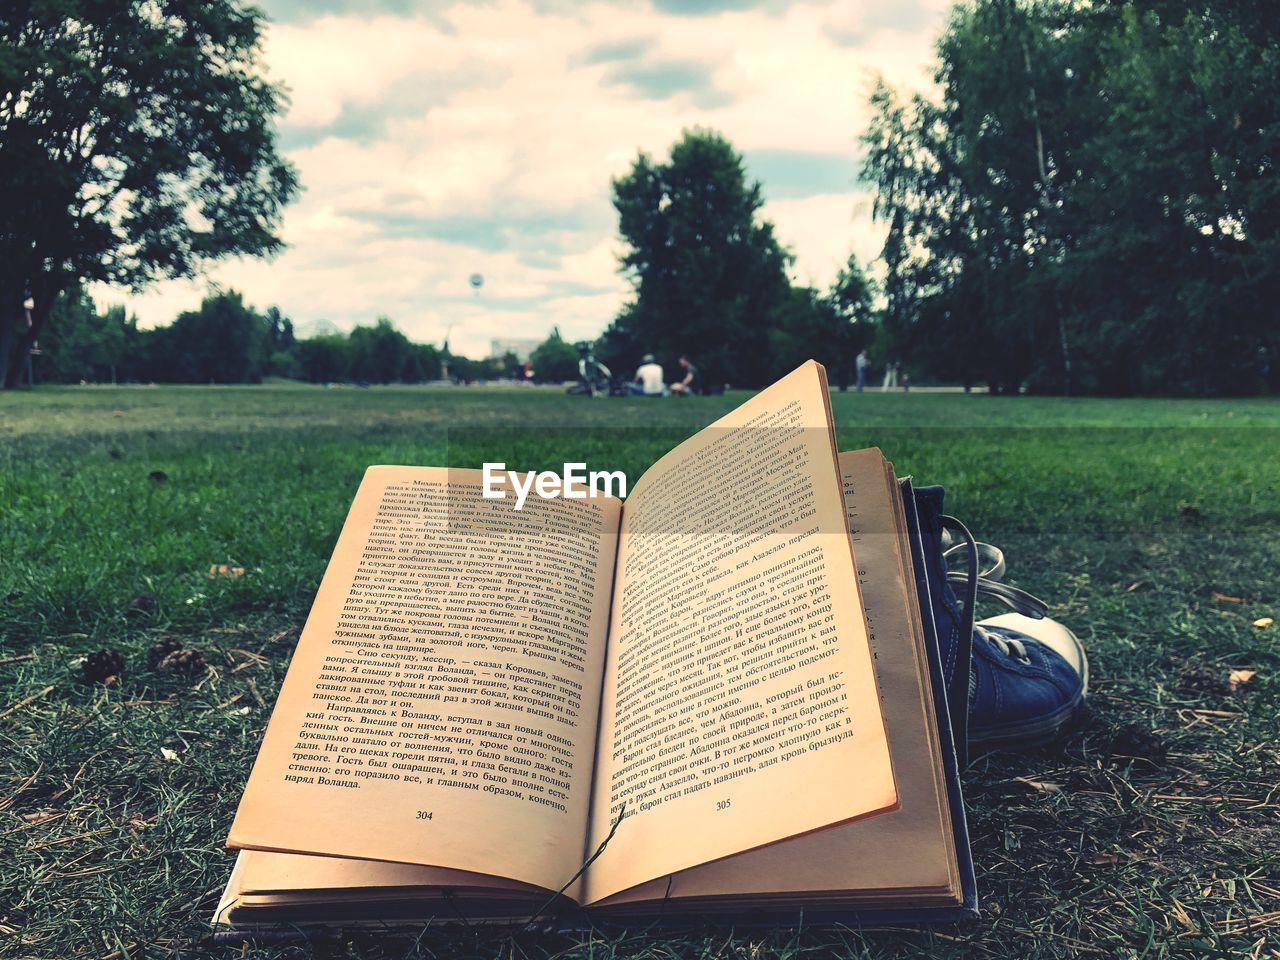 publication, book, grass, plant, field, nature, tree, land, paper, open, day, park, page, absence, sky, no people, focus on foreground, park - man made space, education, close-up, studying